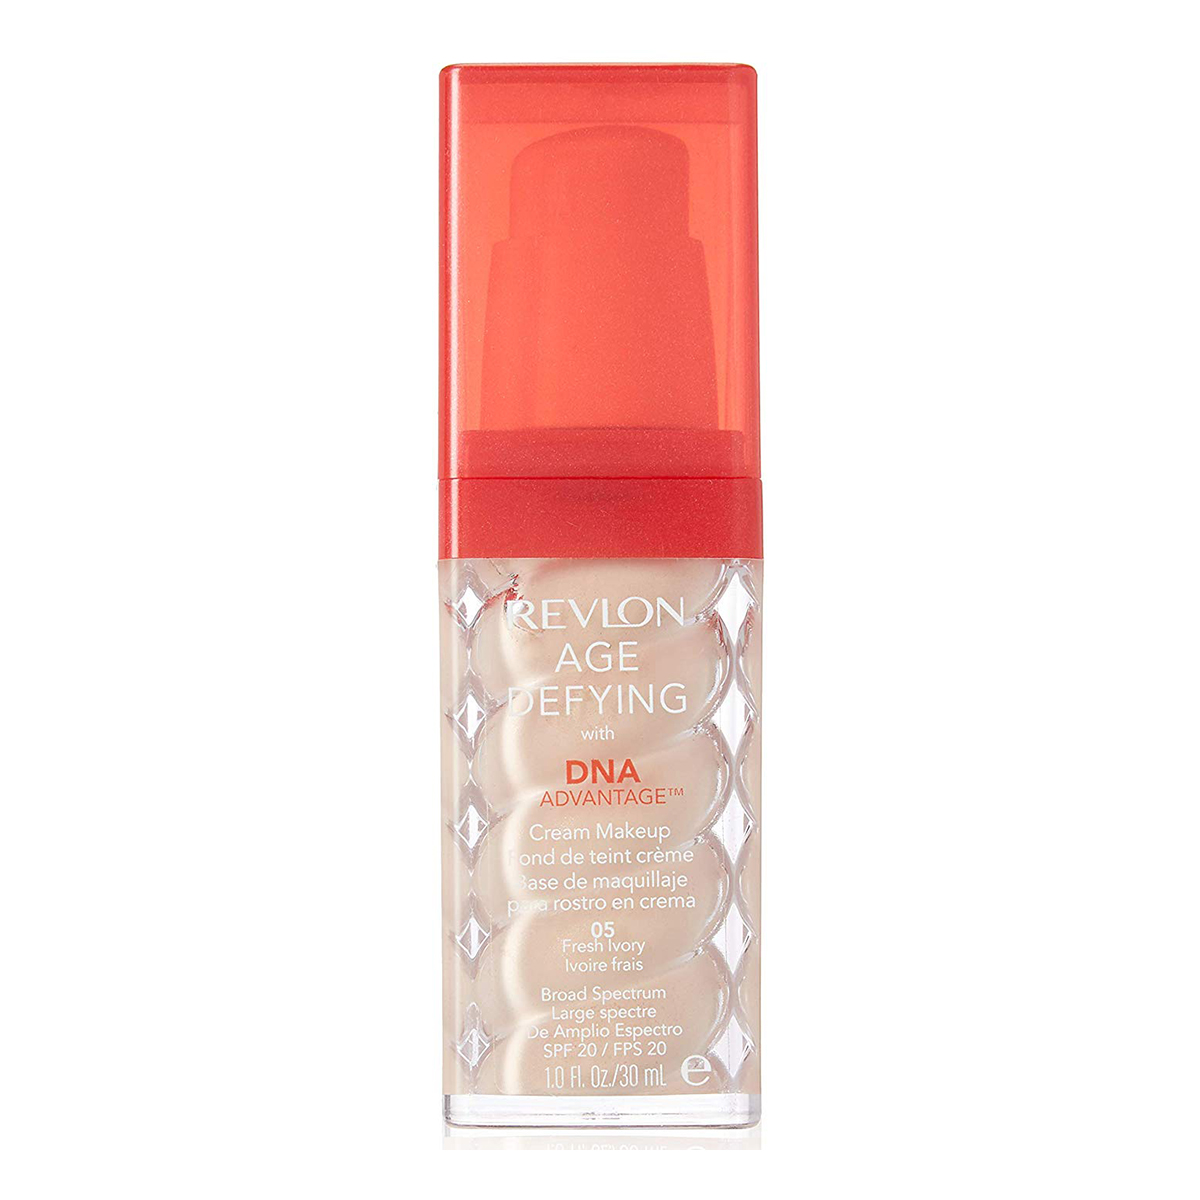 Revlon Age Defying with DNA Advantage Makeup, Fresh Ivory